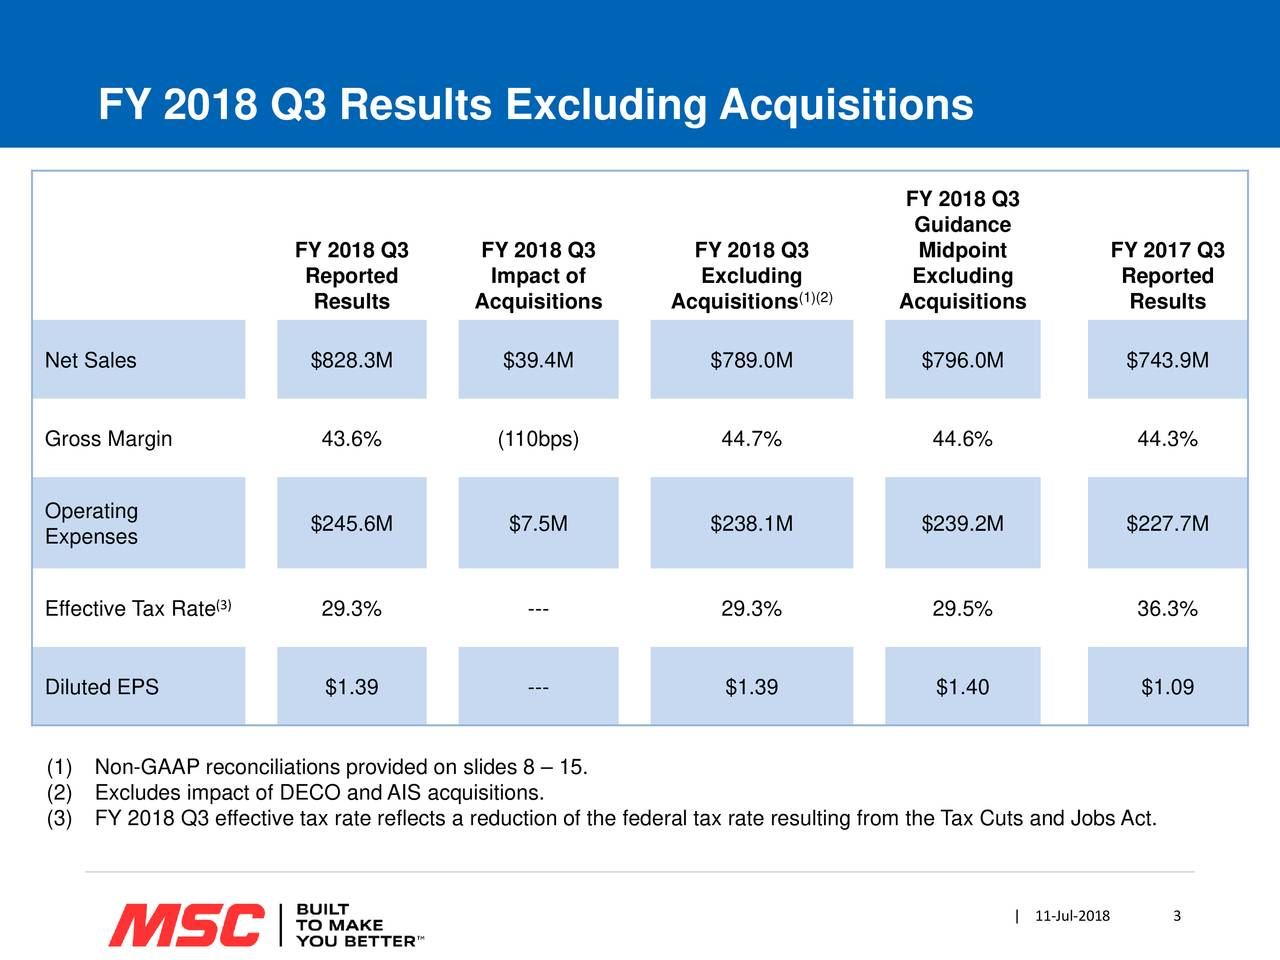 FY 2018 Q3 Guidance FY 2018 Q3 FY 2018 Q3 FY 2018 Q3 Midpoint FY 2017 Q3 Reported Impact of Excluding Excluding Reported Results Acquisitions Acquisitions(1)(2) Acquisitions Results Net Sales $828.3M $39.4M $789.0M $796.0M $743.9M Gross Margin 43.6% (110bps) 44.7% 44.6% 44.3% Operating Expenses $245.6M $7.5M $238.1M $239.2M $227.7M Effective Tax Rate) 29.3% --- 29.3% 29.5% 36.3% Diluted EPS $1.39 --- $1.39 $1.40 $1.09 (1) Non-GAAP reconciliations provided on slides 8 – 15. (2) Excludes impact of DECO and AIS acquisitions. (3) FY 2018 Q3 effective tax rate reflects a reduction of the federal tax rate resulting from the Tax Cuts and Jobs Act. | 11-Jul-2018 3